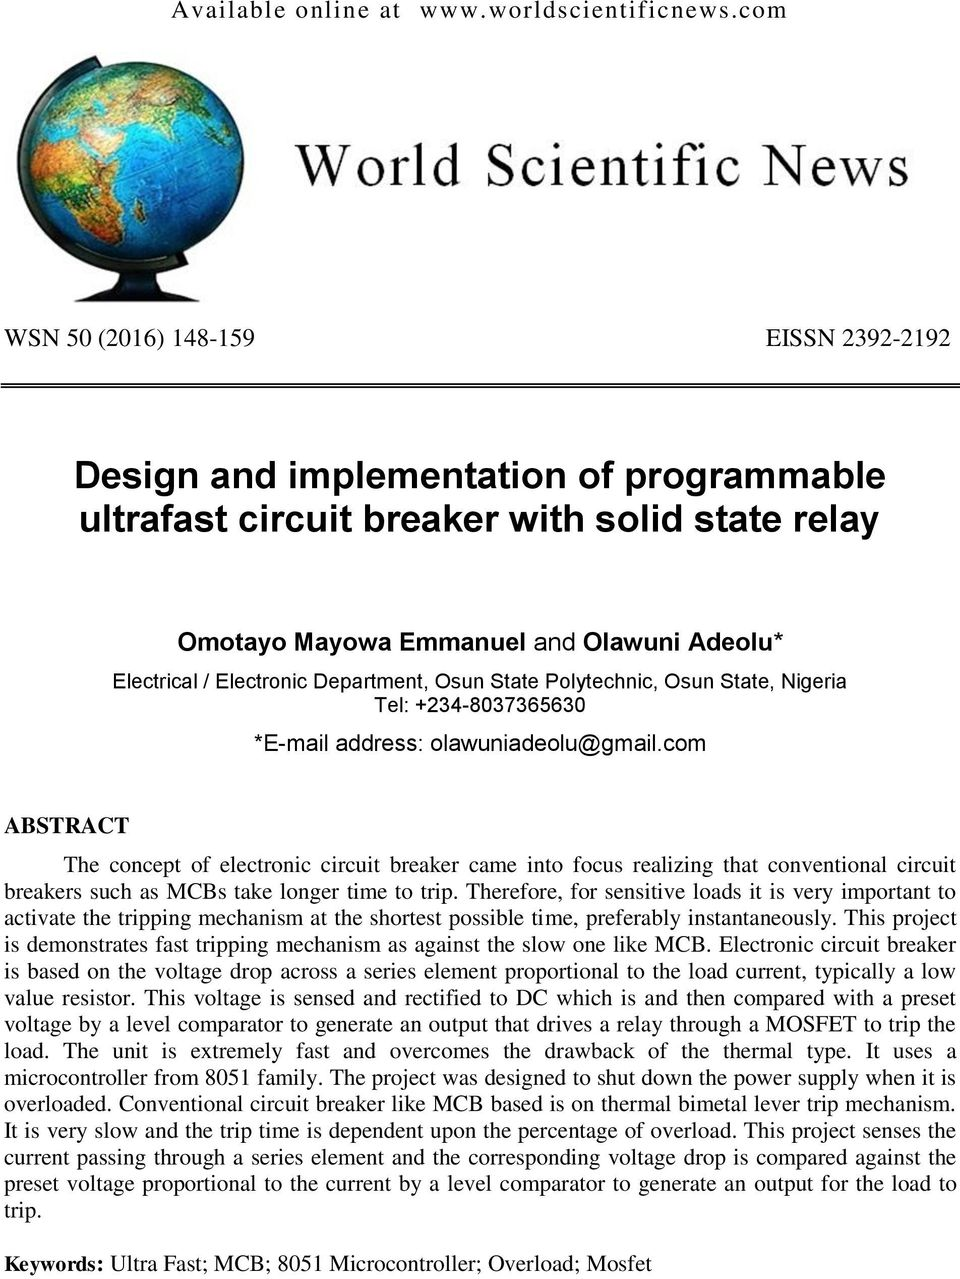 Design And Implementation Of Programmable Ultrafast Circuit Breaker Build Solidstate Lighting Content From Electronic Department Osun State Polytechnic Nigeria Tel 234